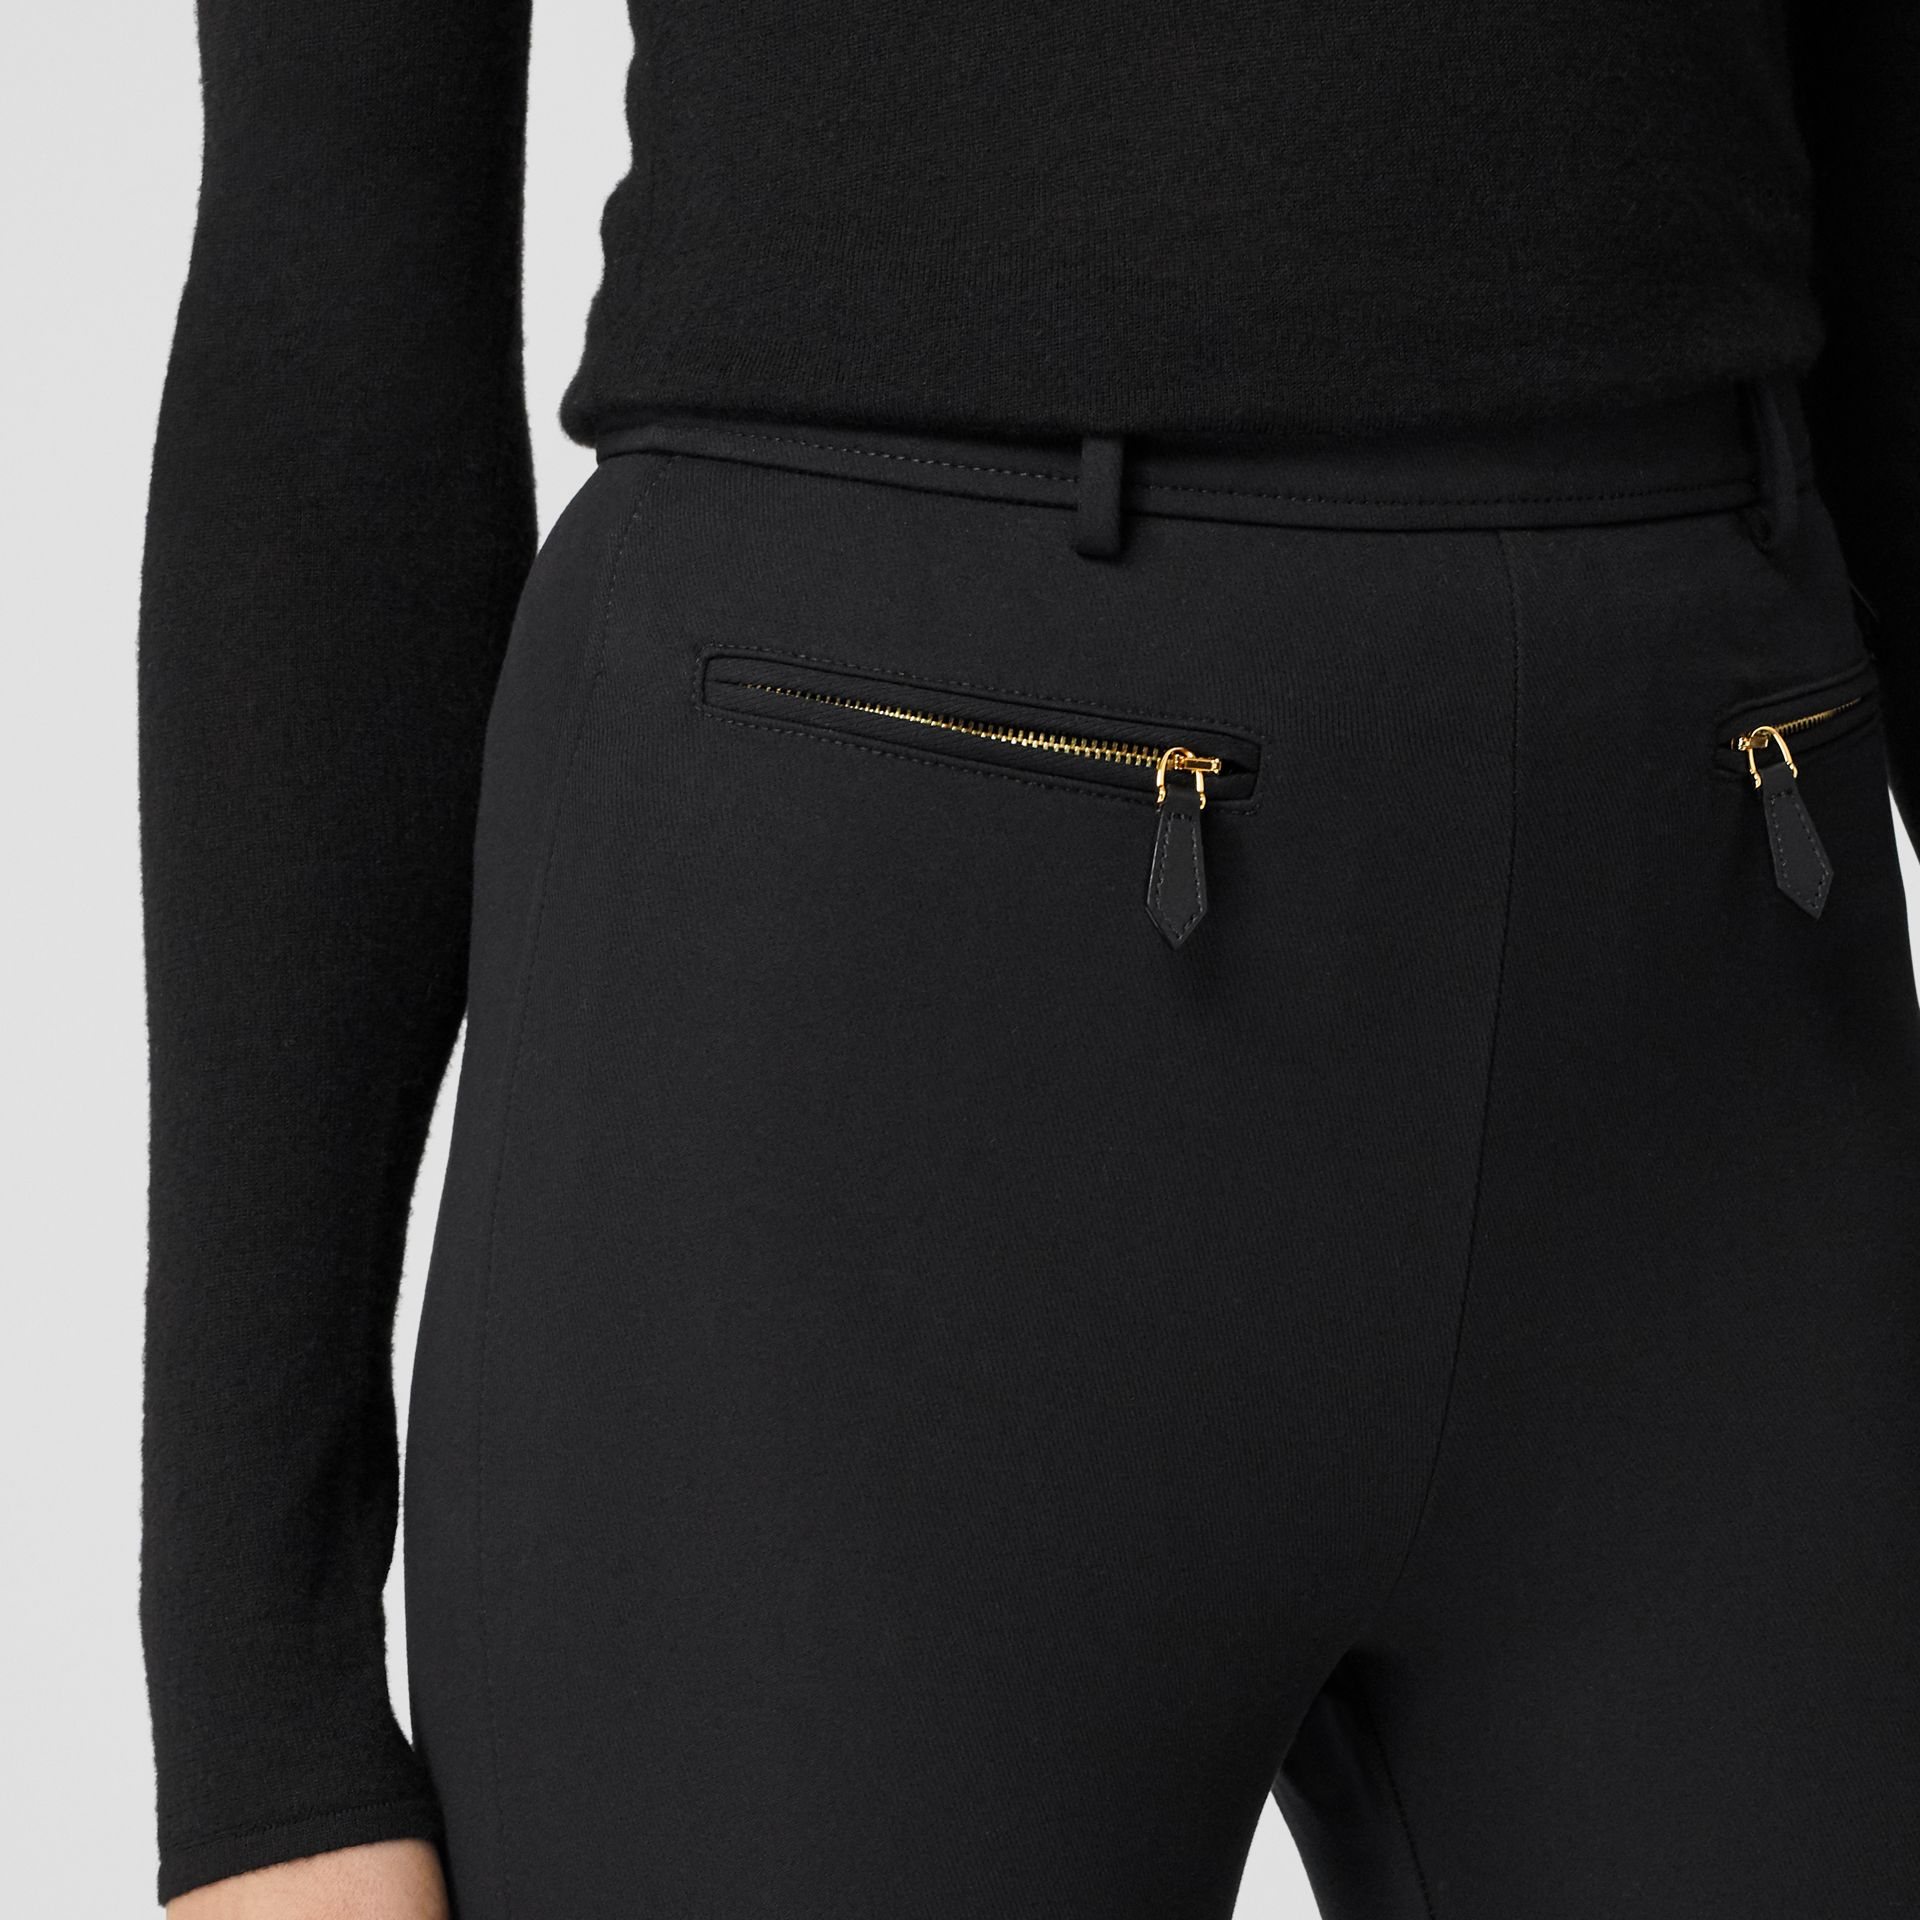 Lambskin Trim Stretch Cotton Blend Trousers in Black - Women | Burberry - gallery image 1